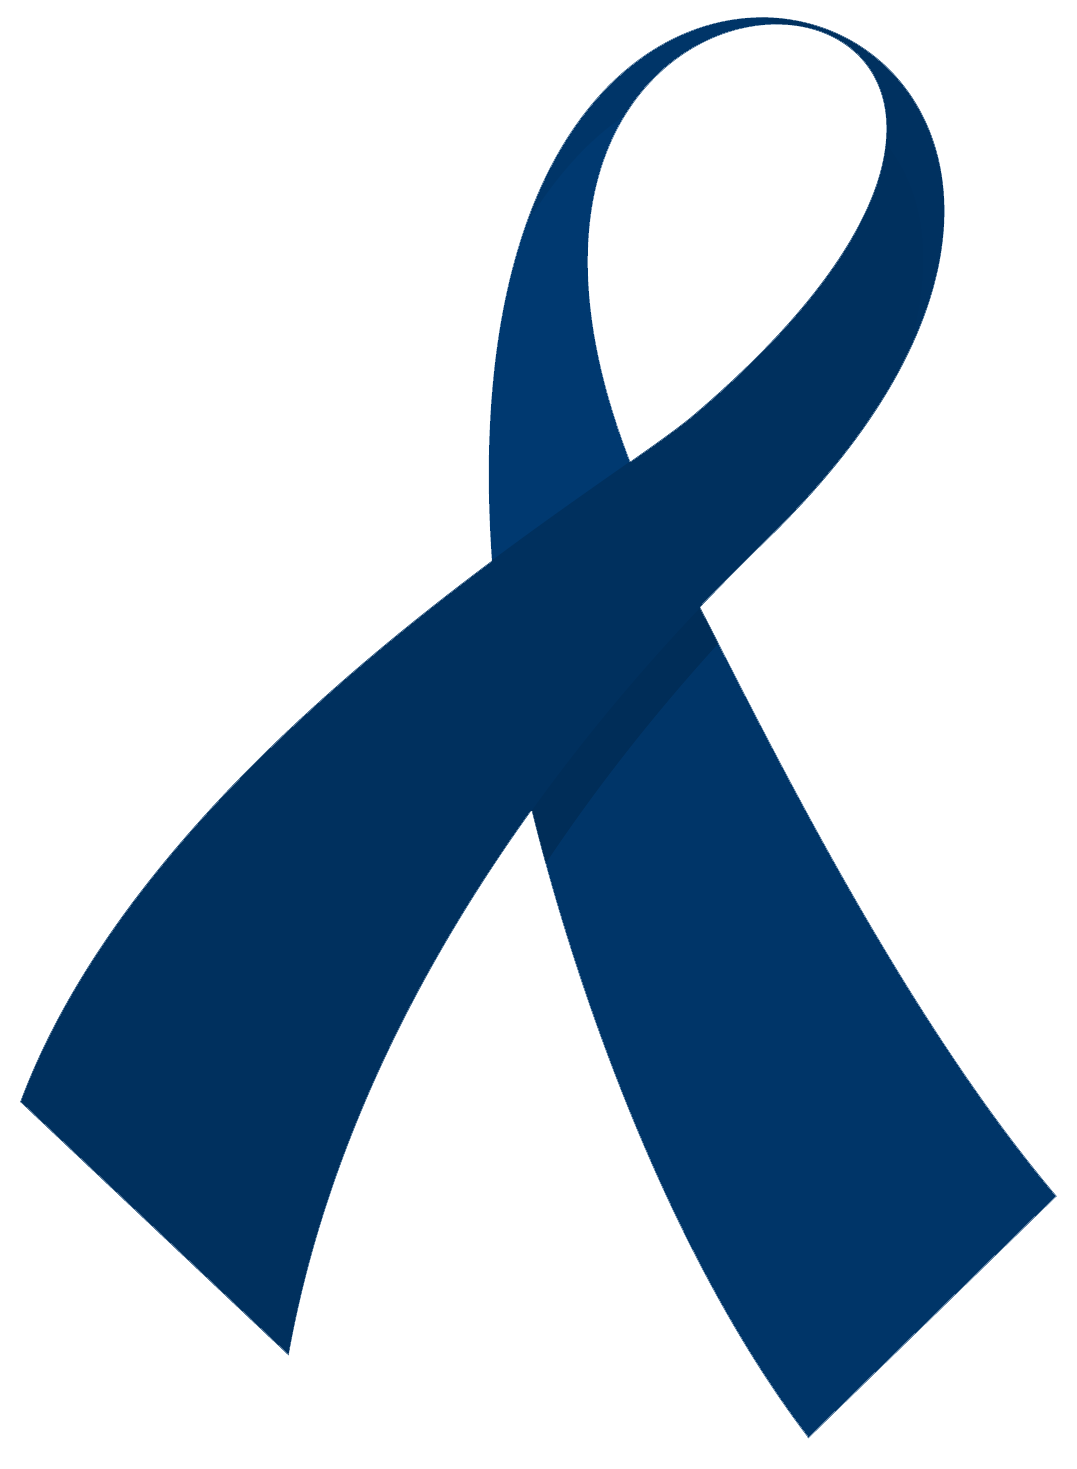 Colon Cancer Ribbon Clip Art